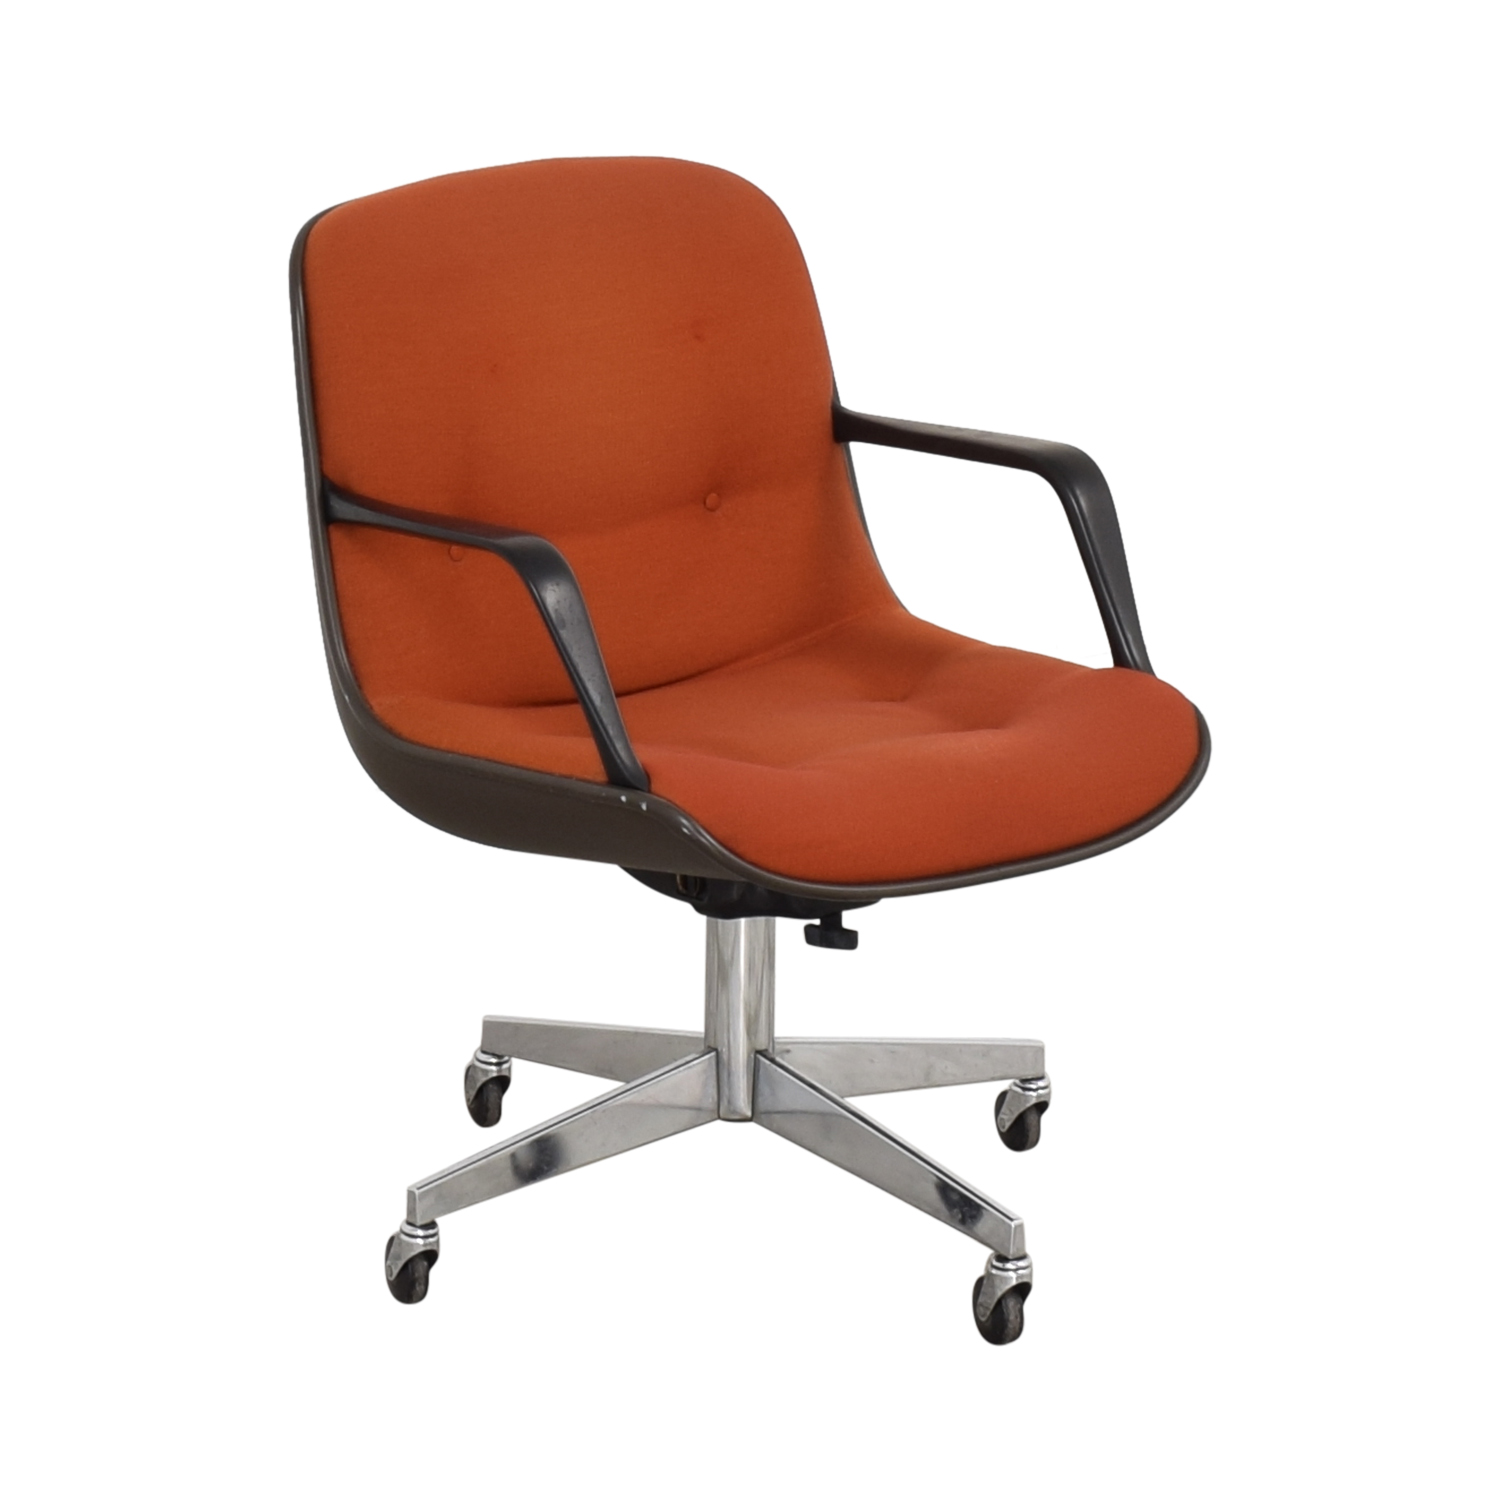 Steelcase Steelcase 451 Supervisors Desk Chair dimensions